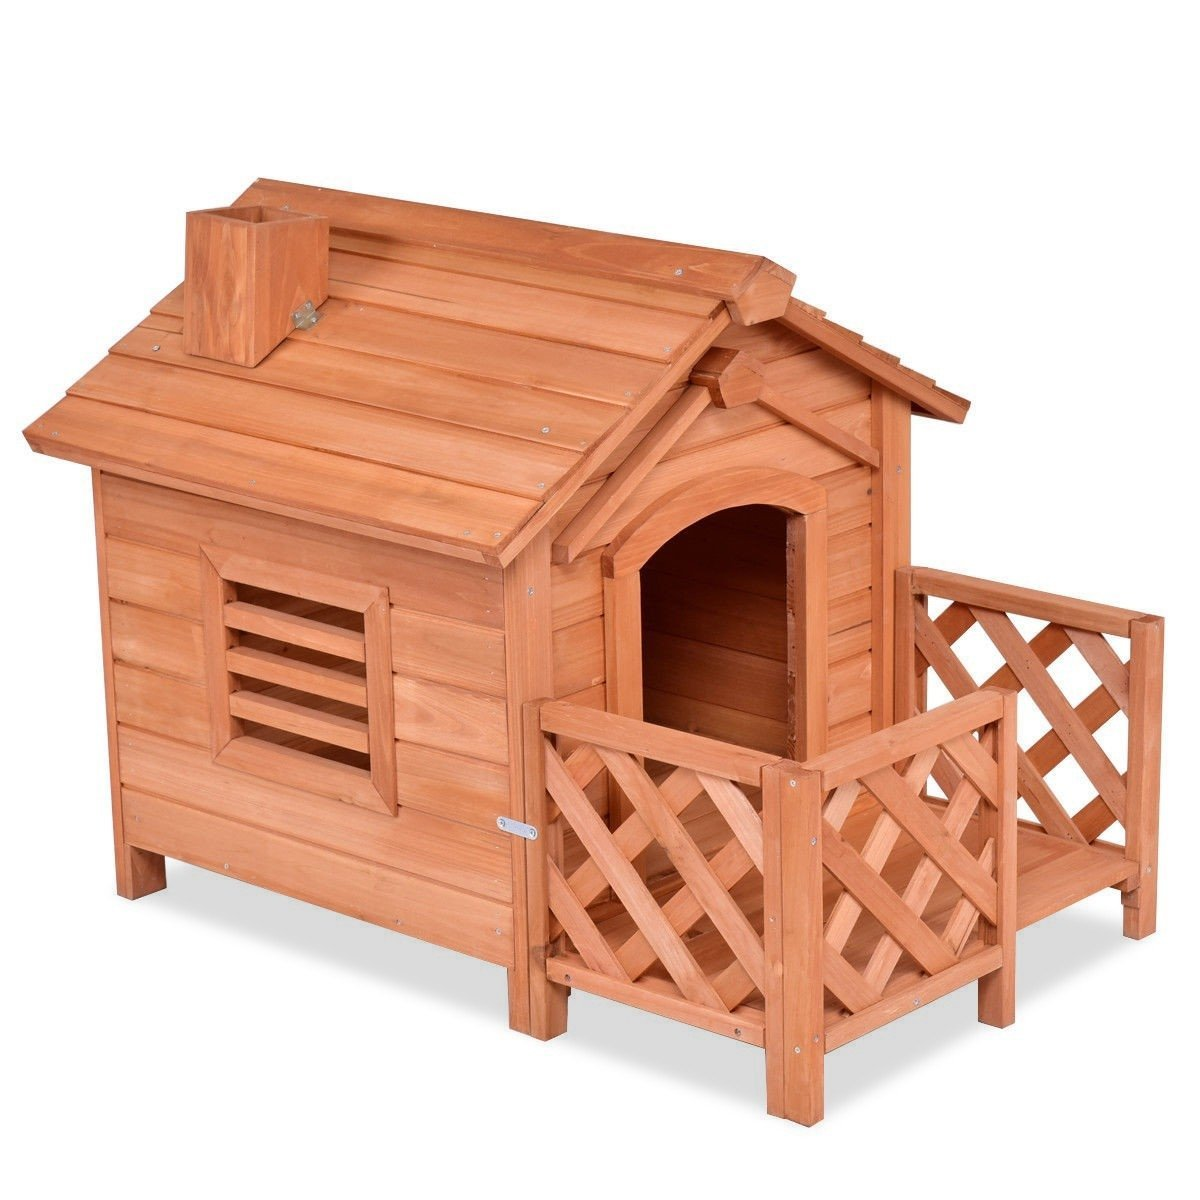 Primary image for Outdoor Natural Fir Wood Dog House for Small Dogs